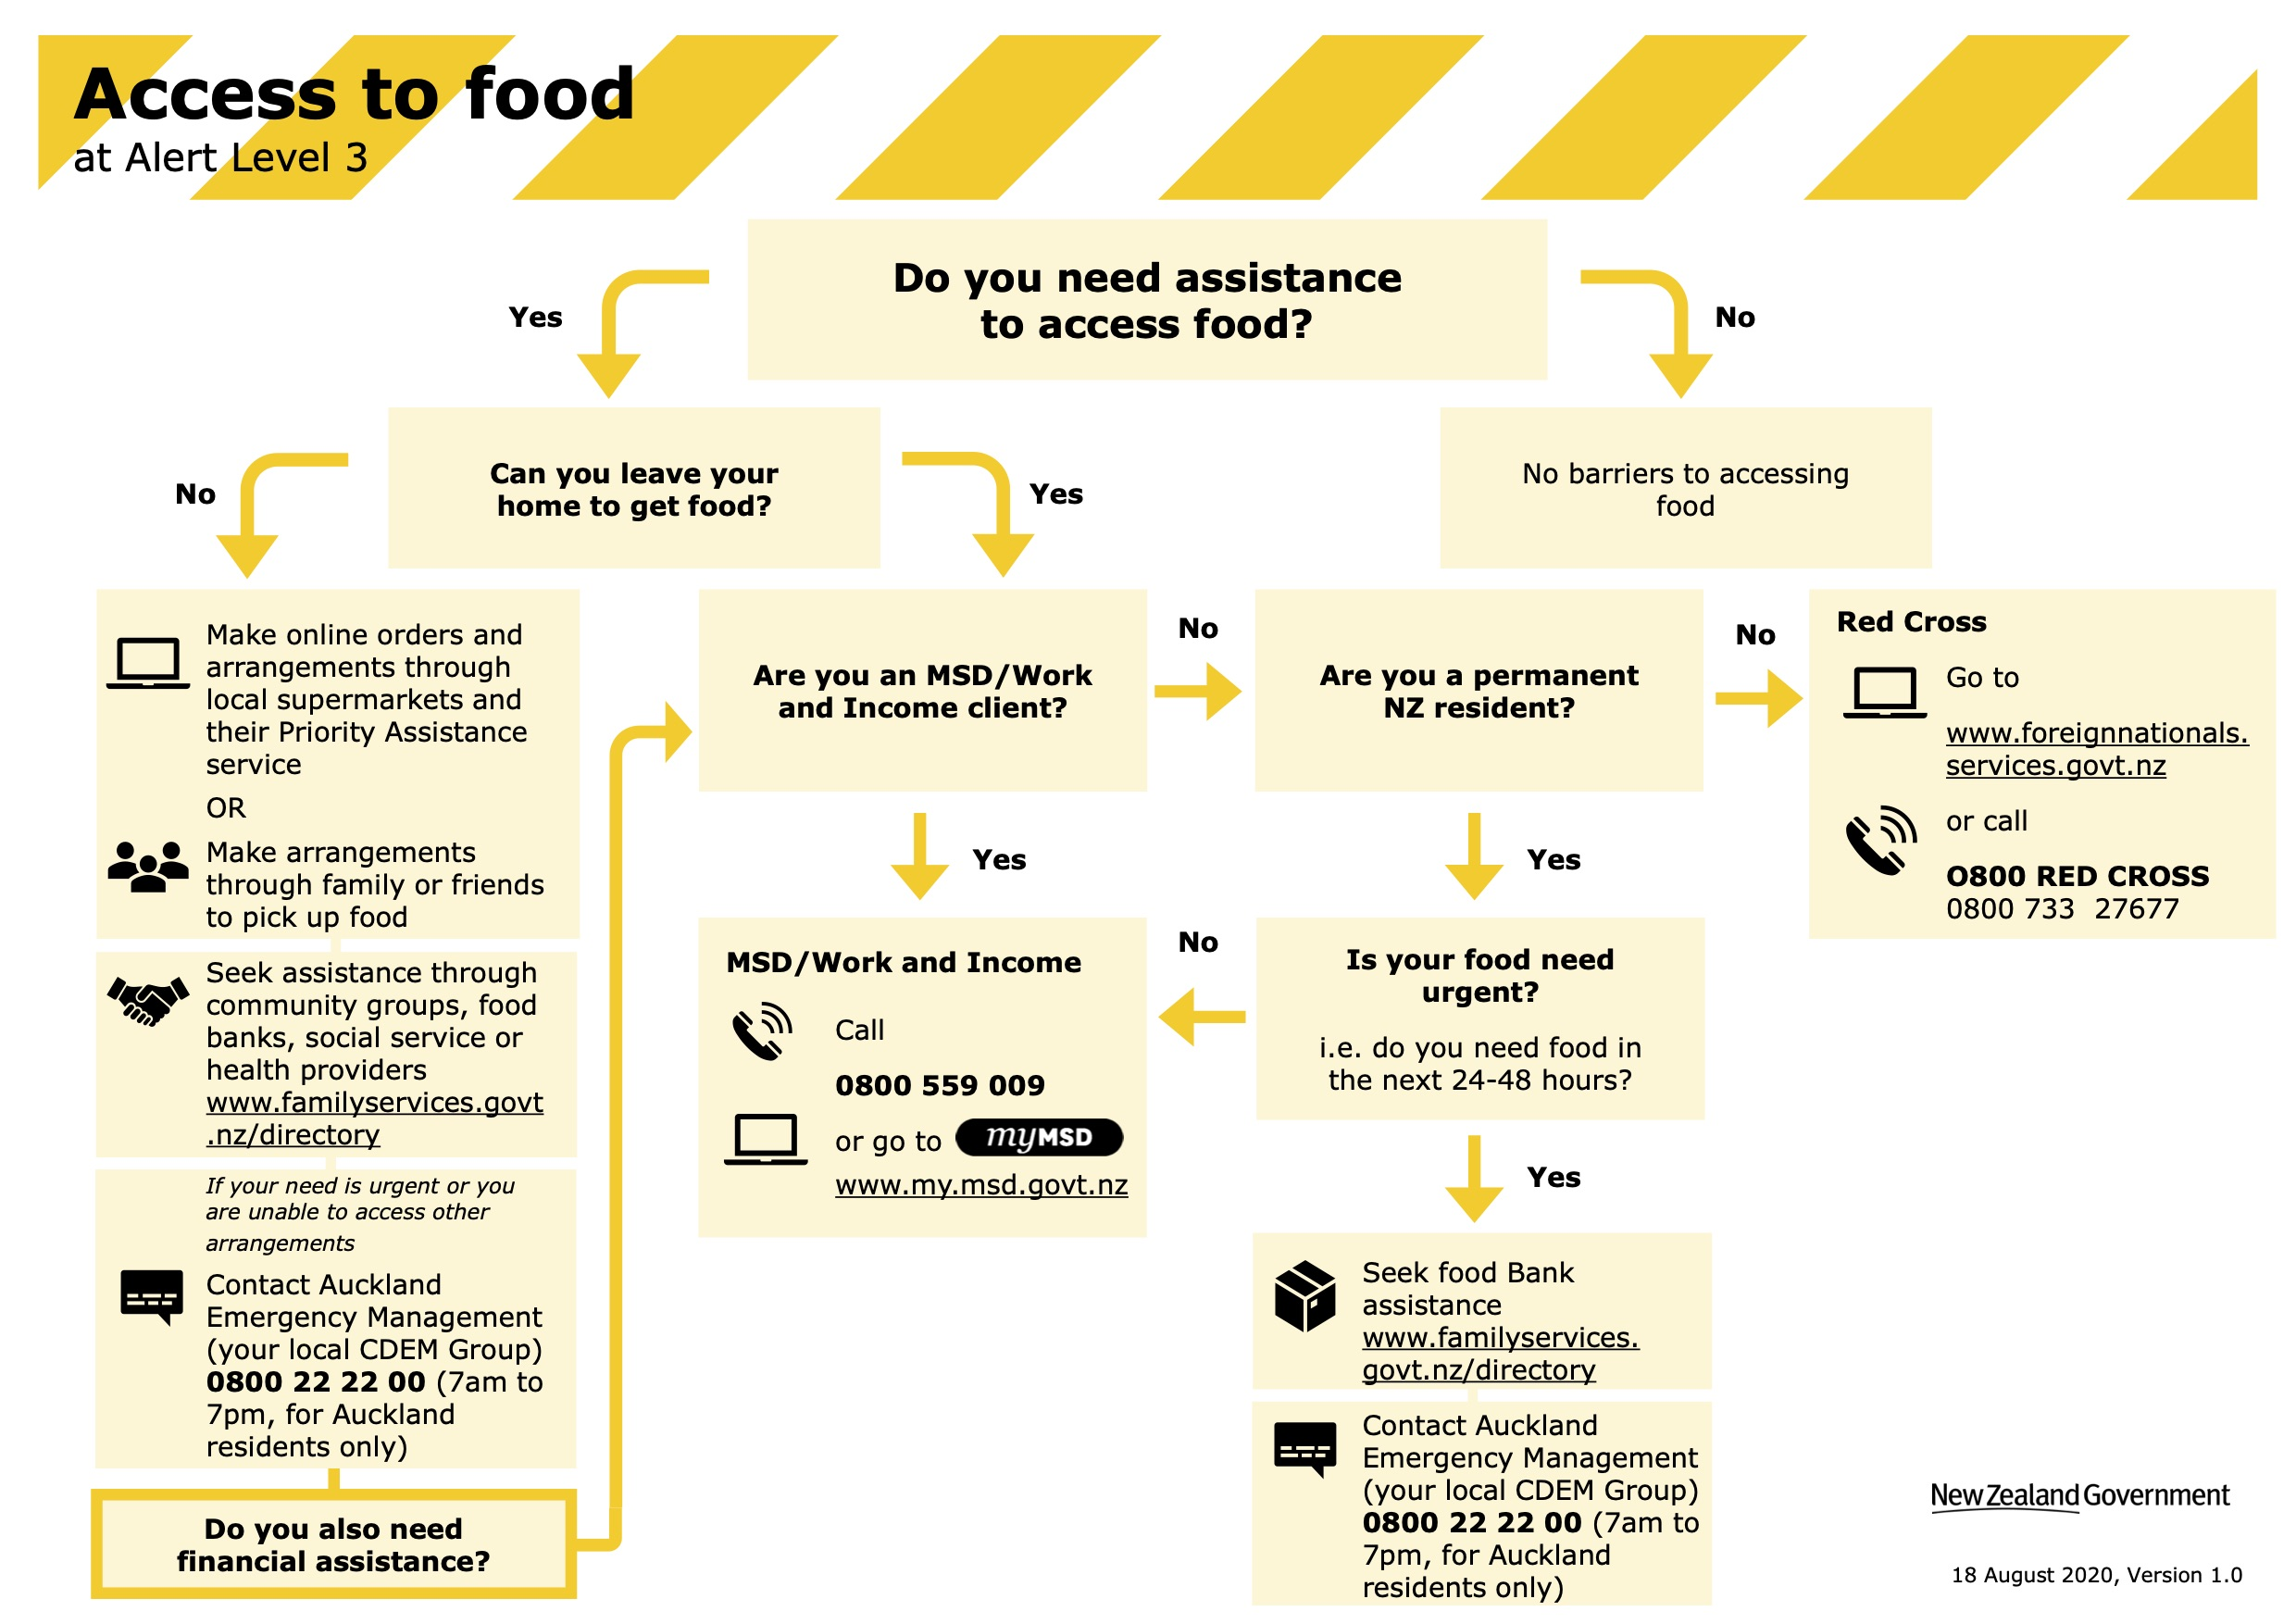 Image of how to access food in NZ with a flowchart